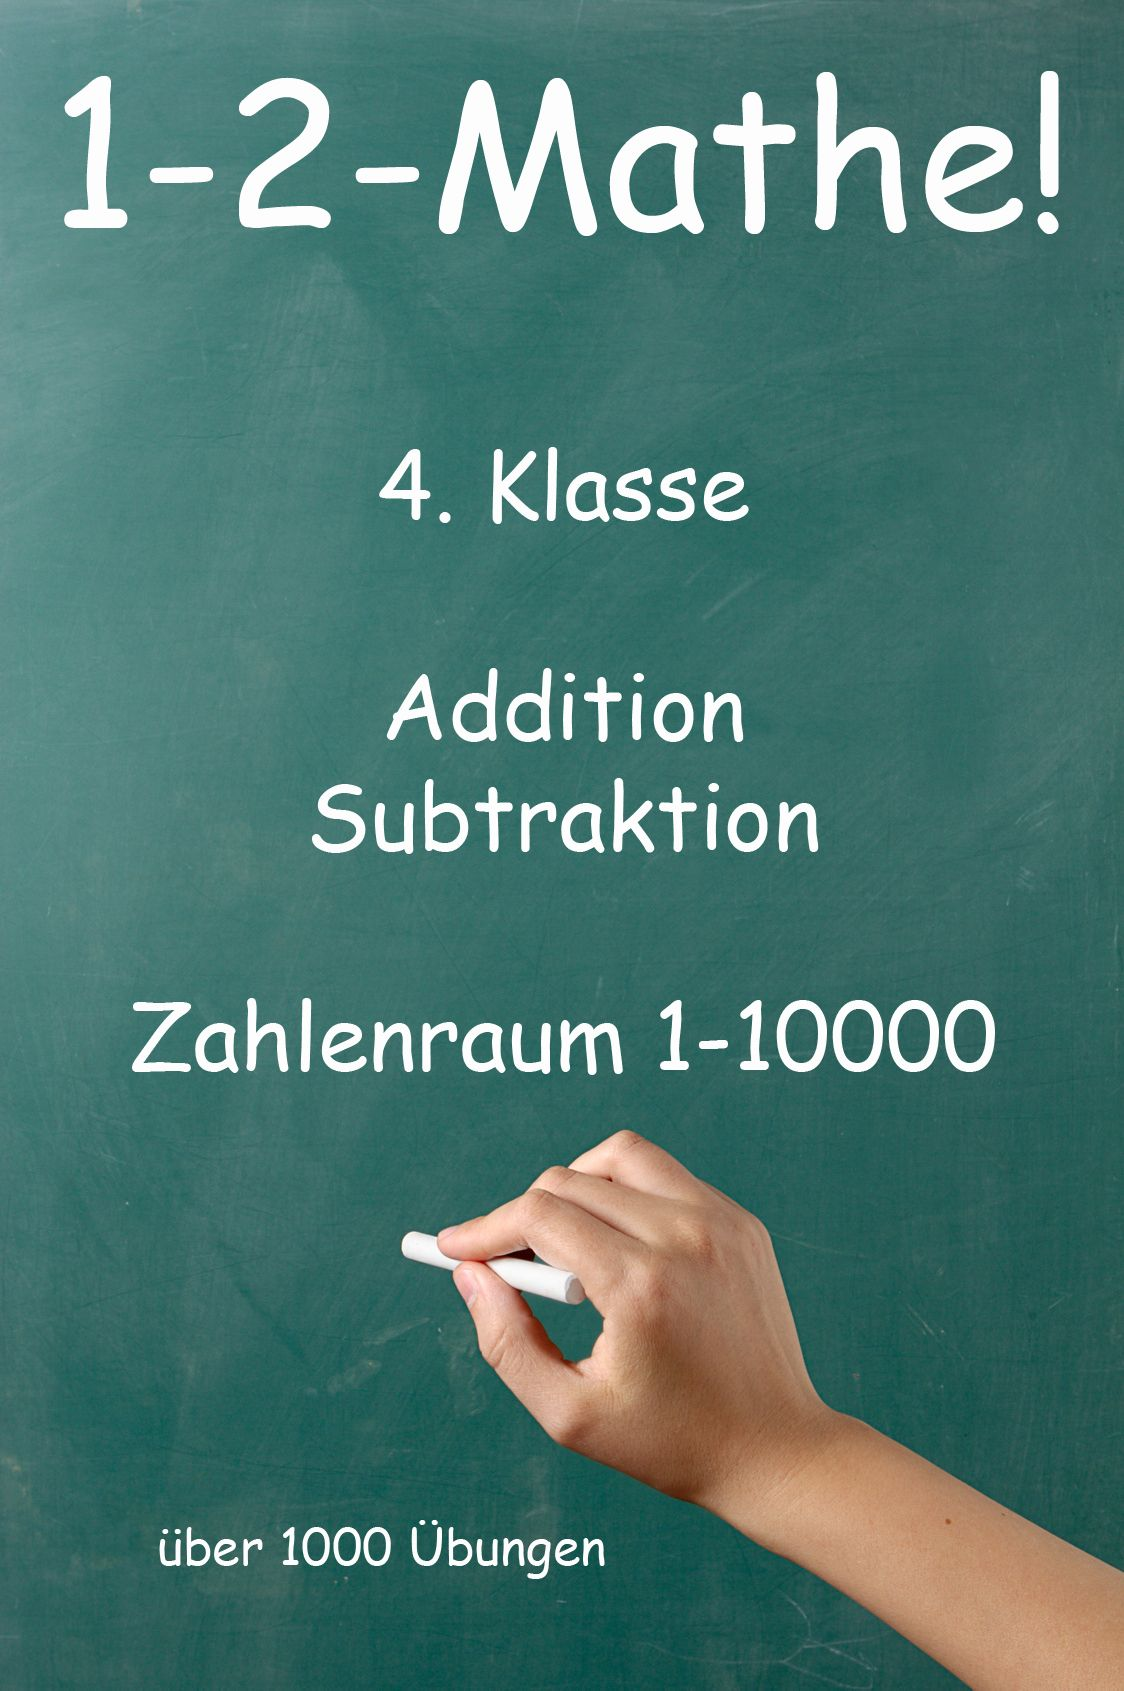 1-2-Mathe! - 4. Klasse - Addition, Subtraktion, Zahlenraum bis 10000 ...